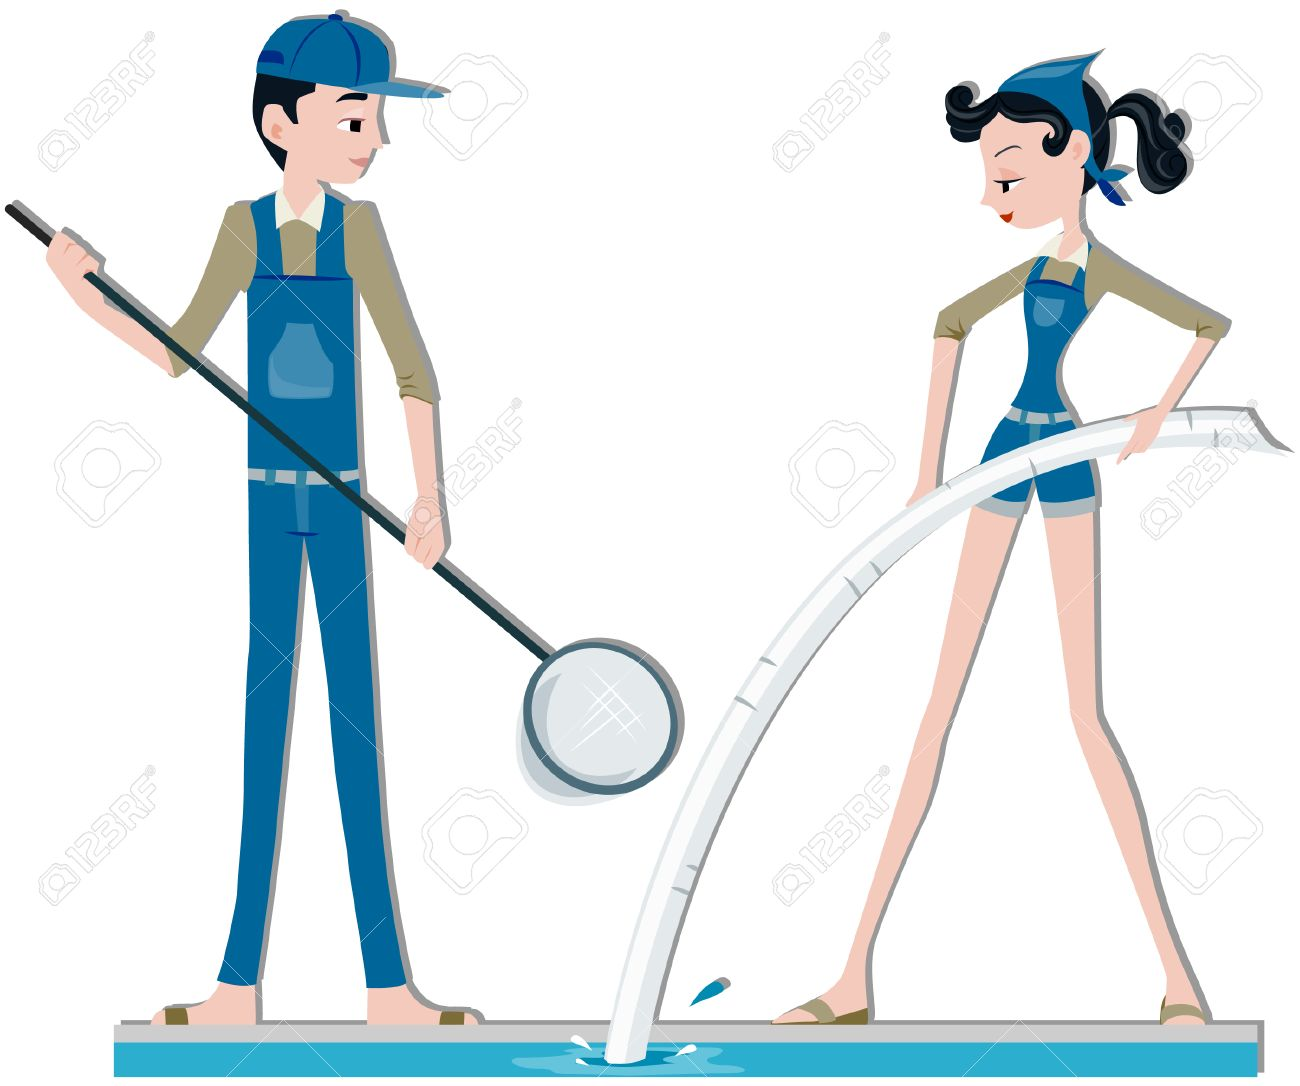 Pool Cleaning And Maintenance pool cleaners royalty free cliparts, vectors, and stock